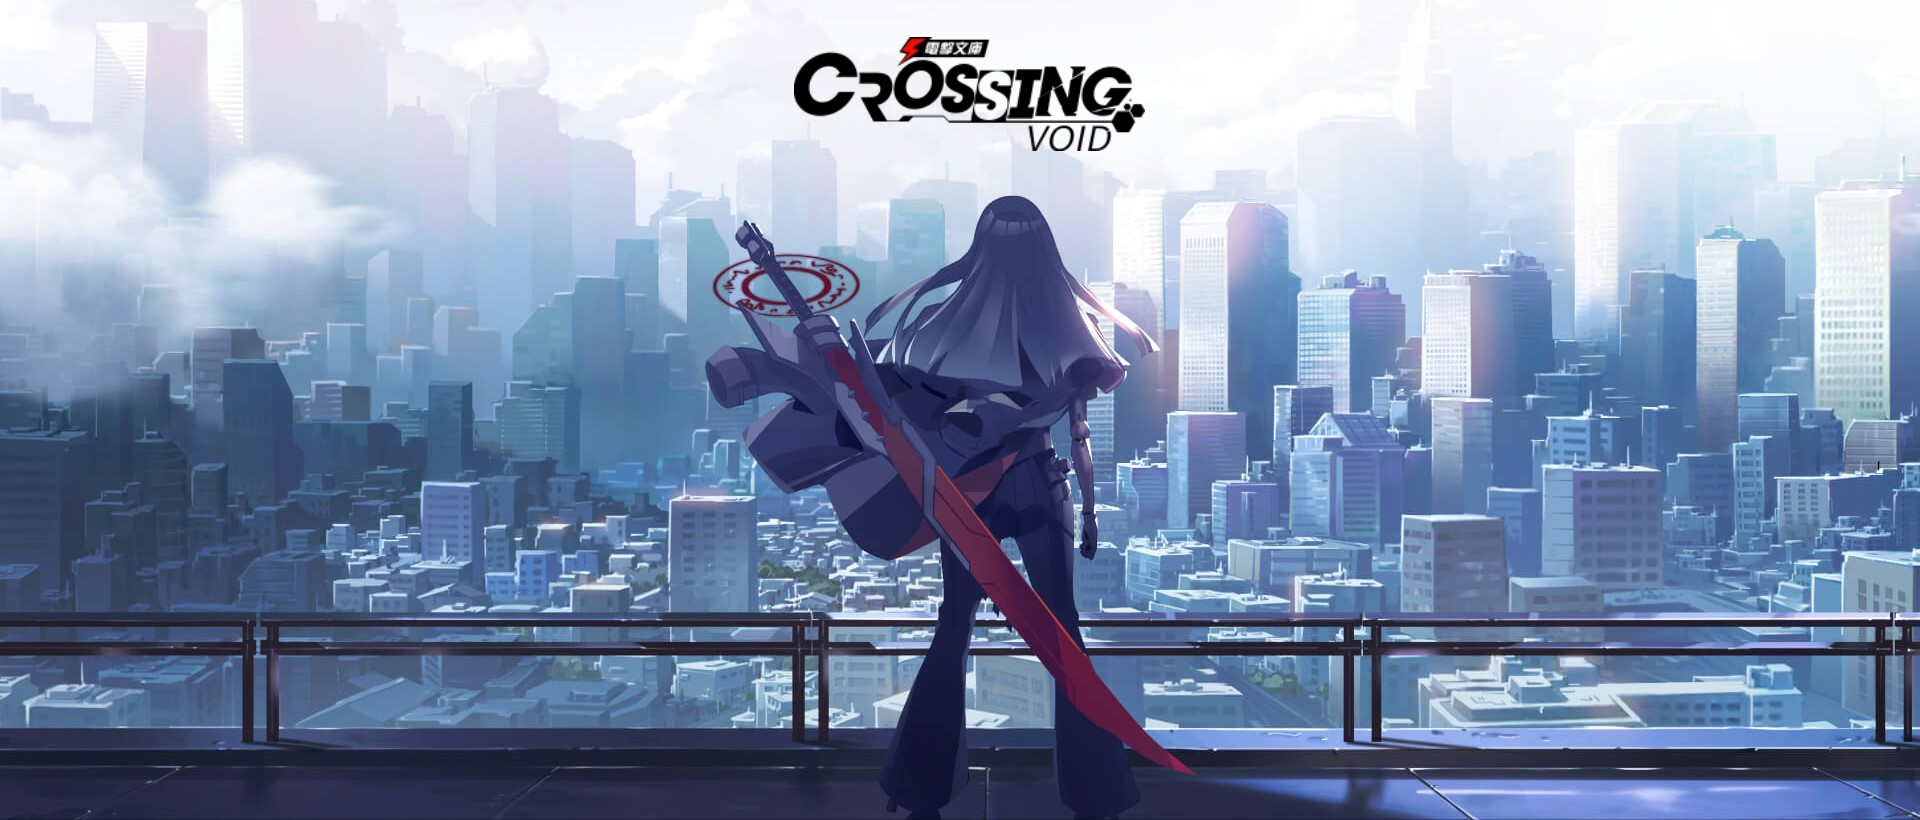 Crossing Void - Global